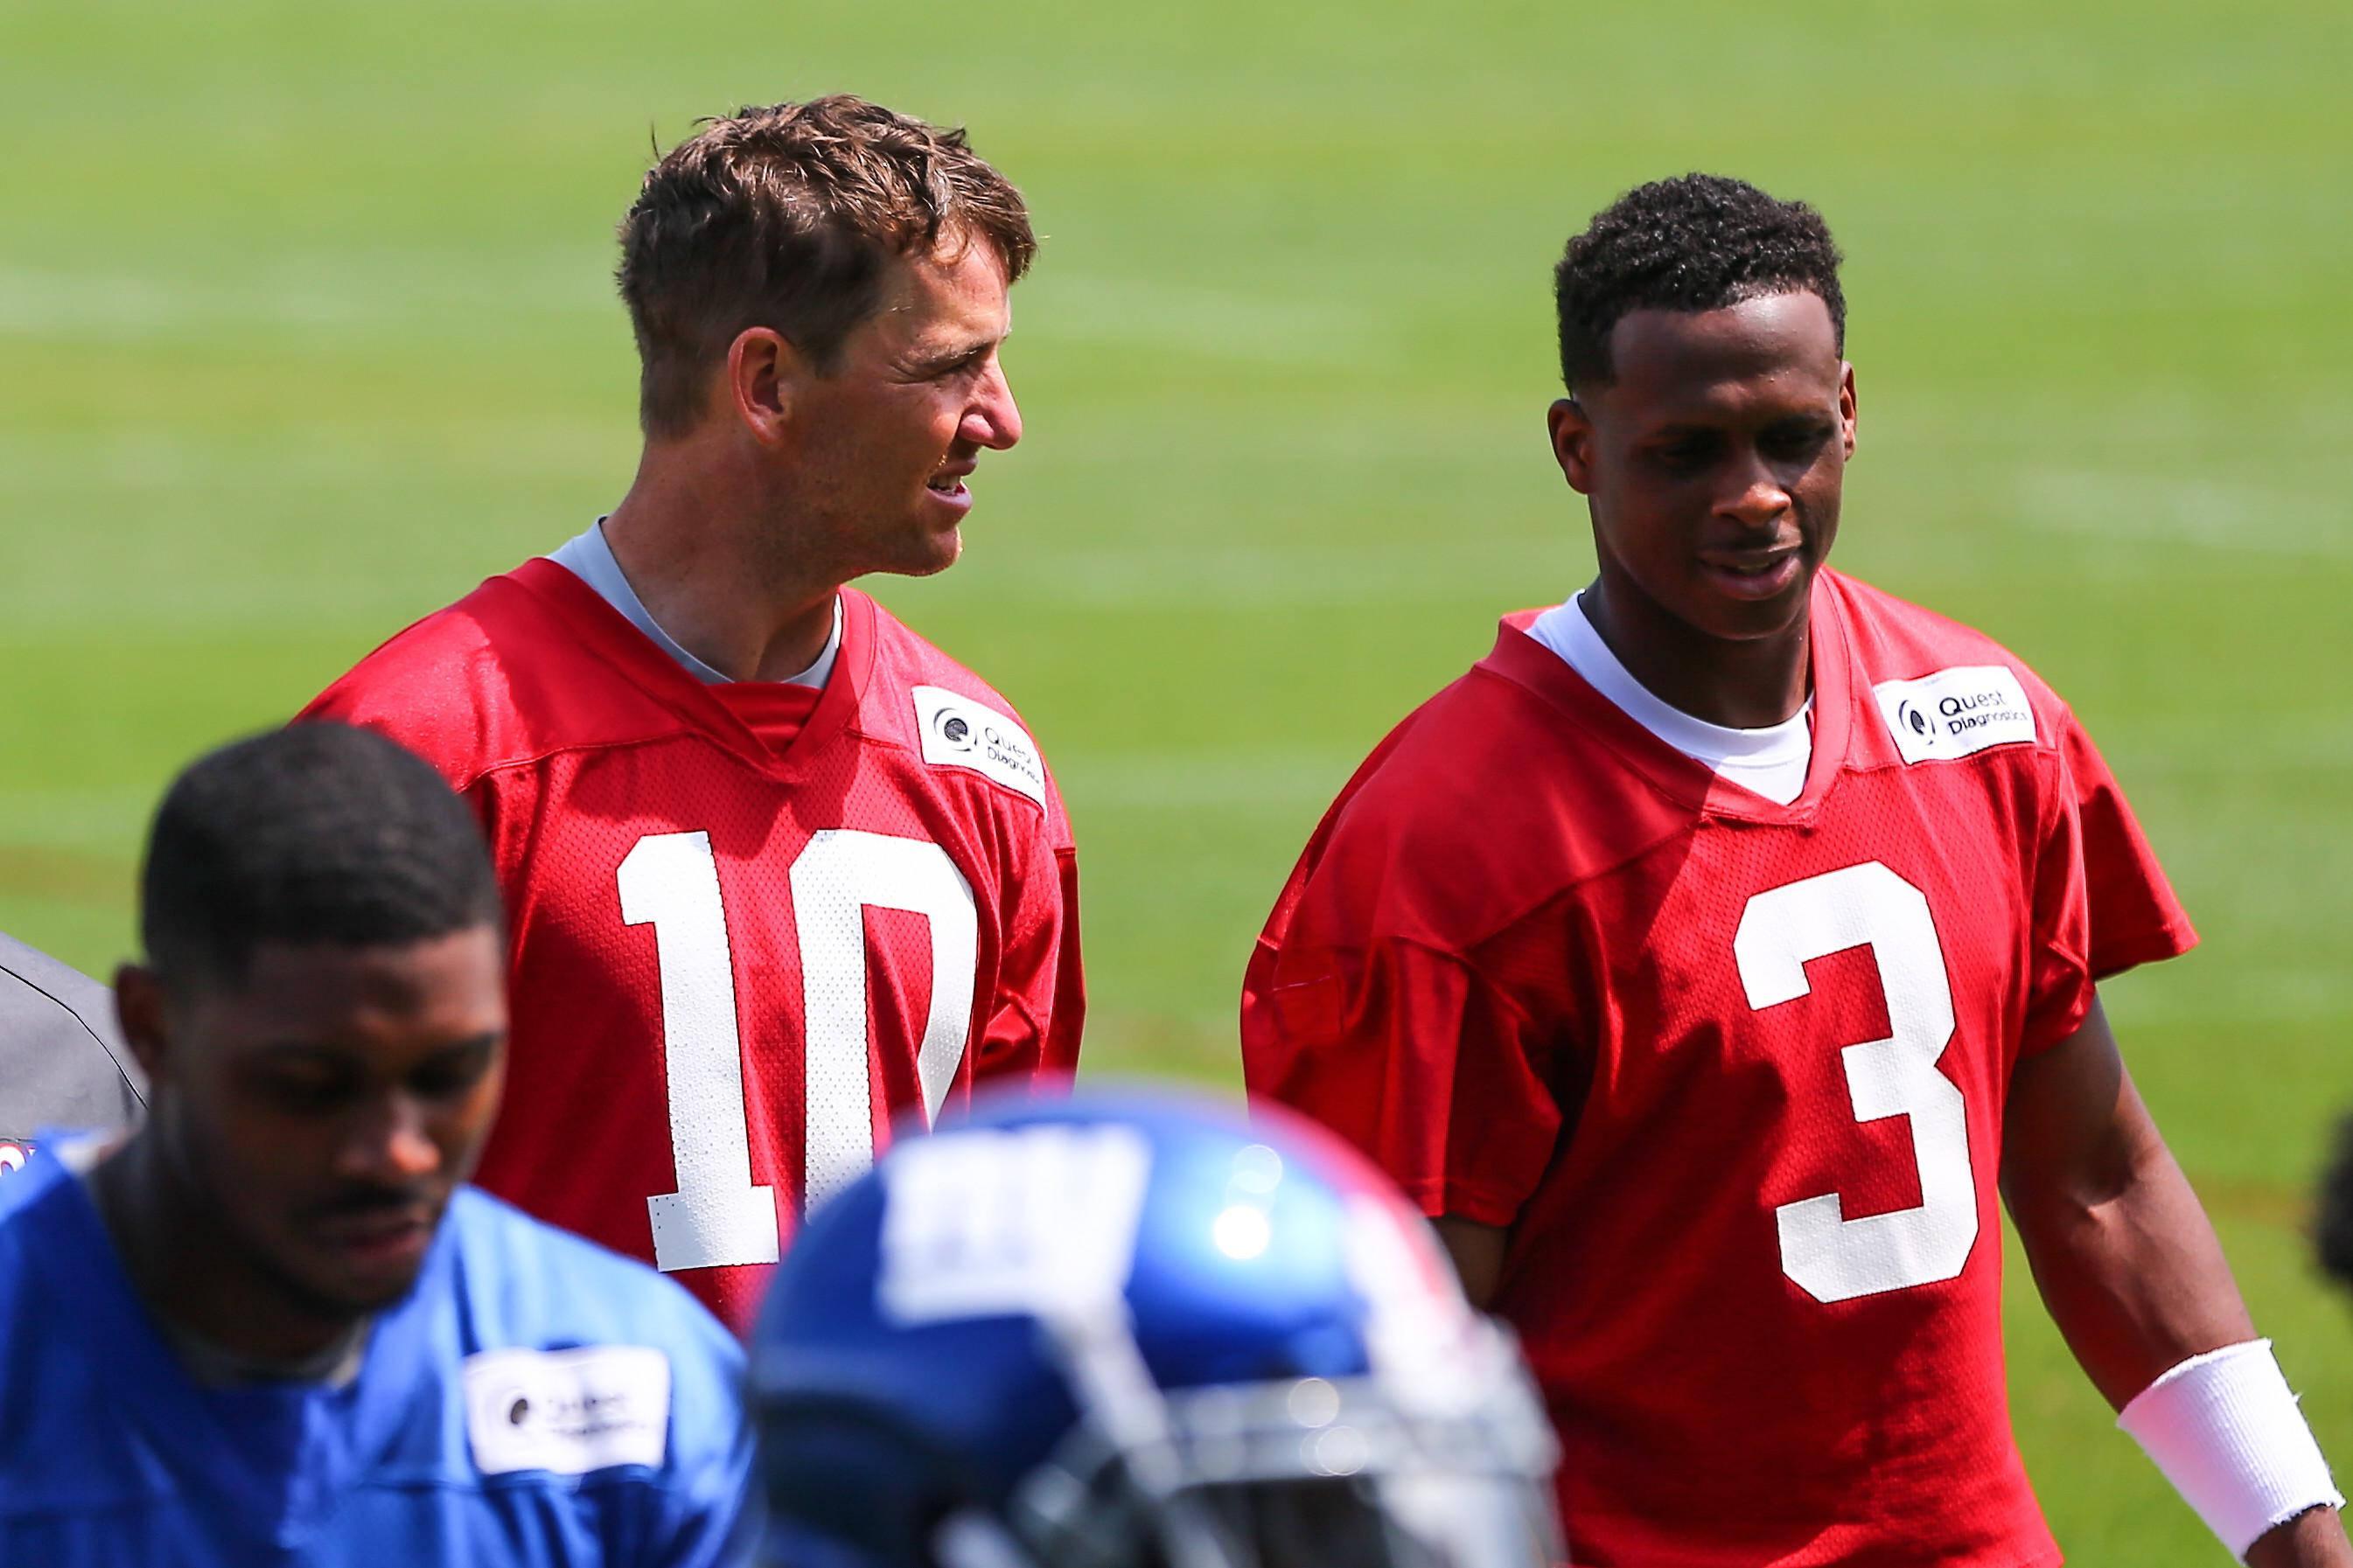 56a6e2754a8 Eli Manning emotional after losing starting QB spot to Geno Smith